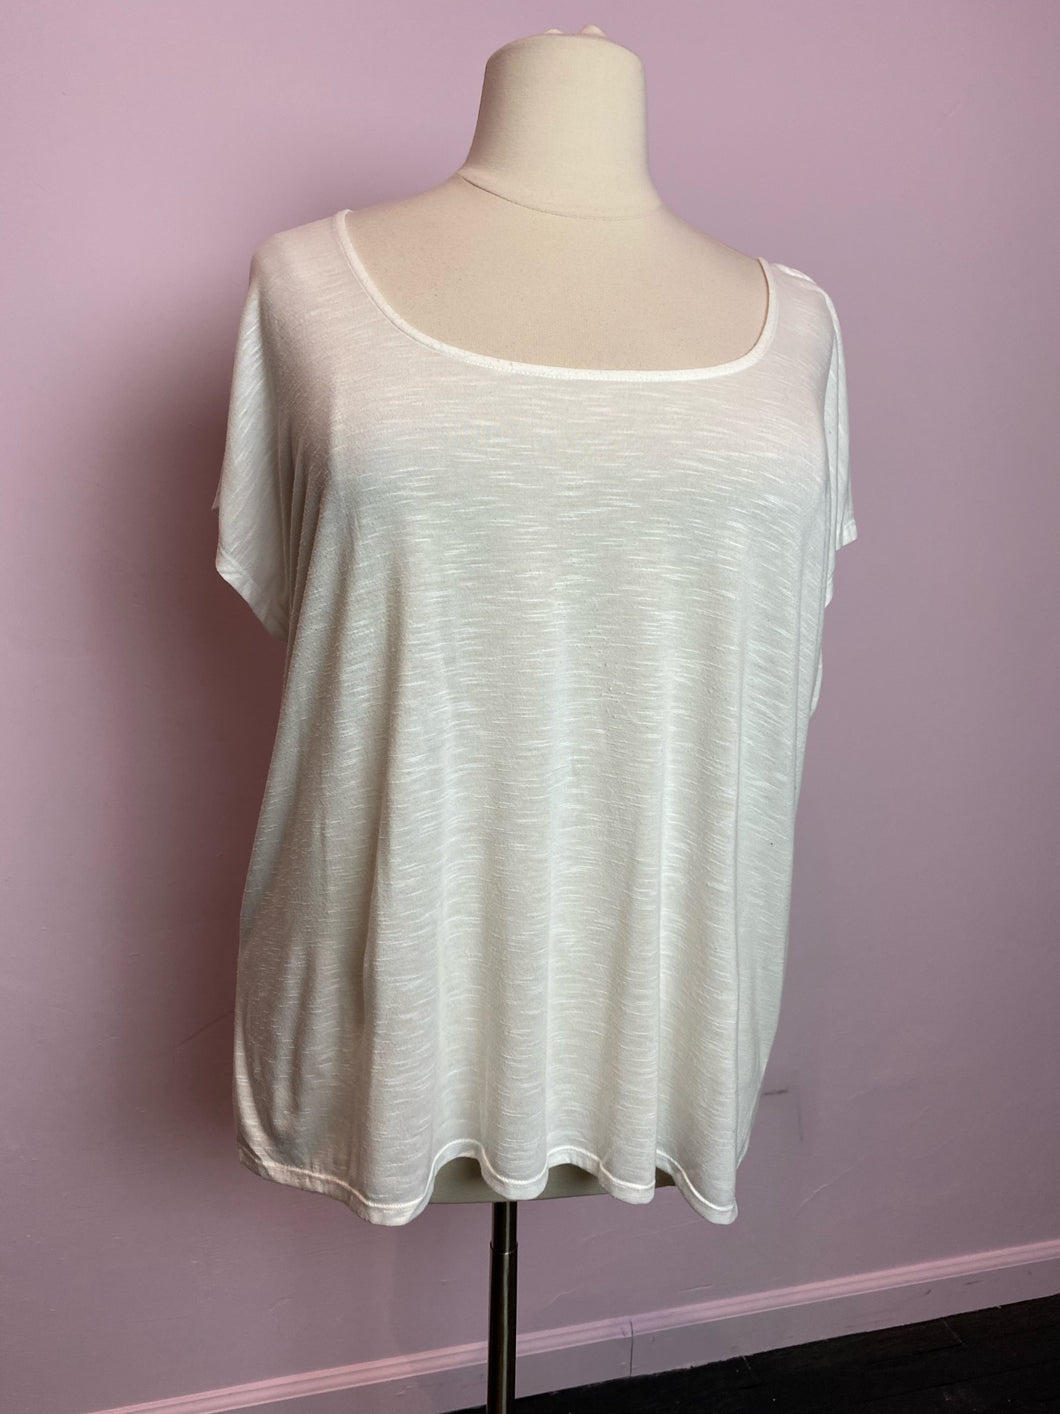 Heather White Lightweight Short Sleeve Torrid Top, Size 1X/2X